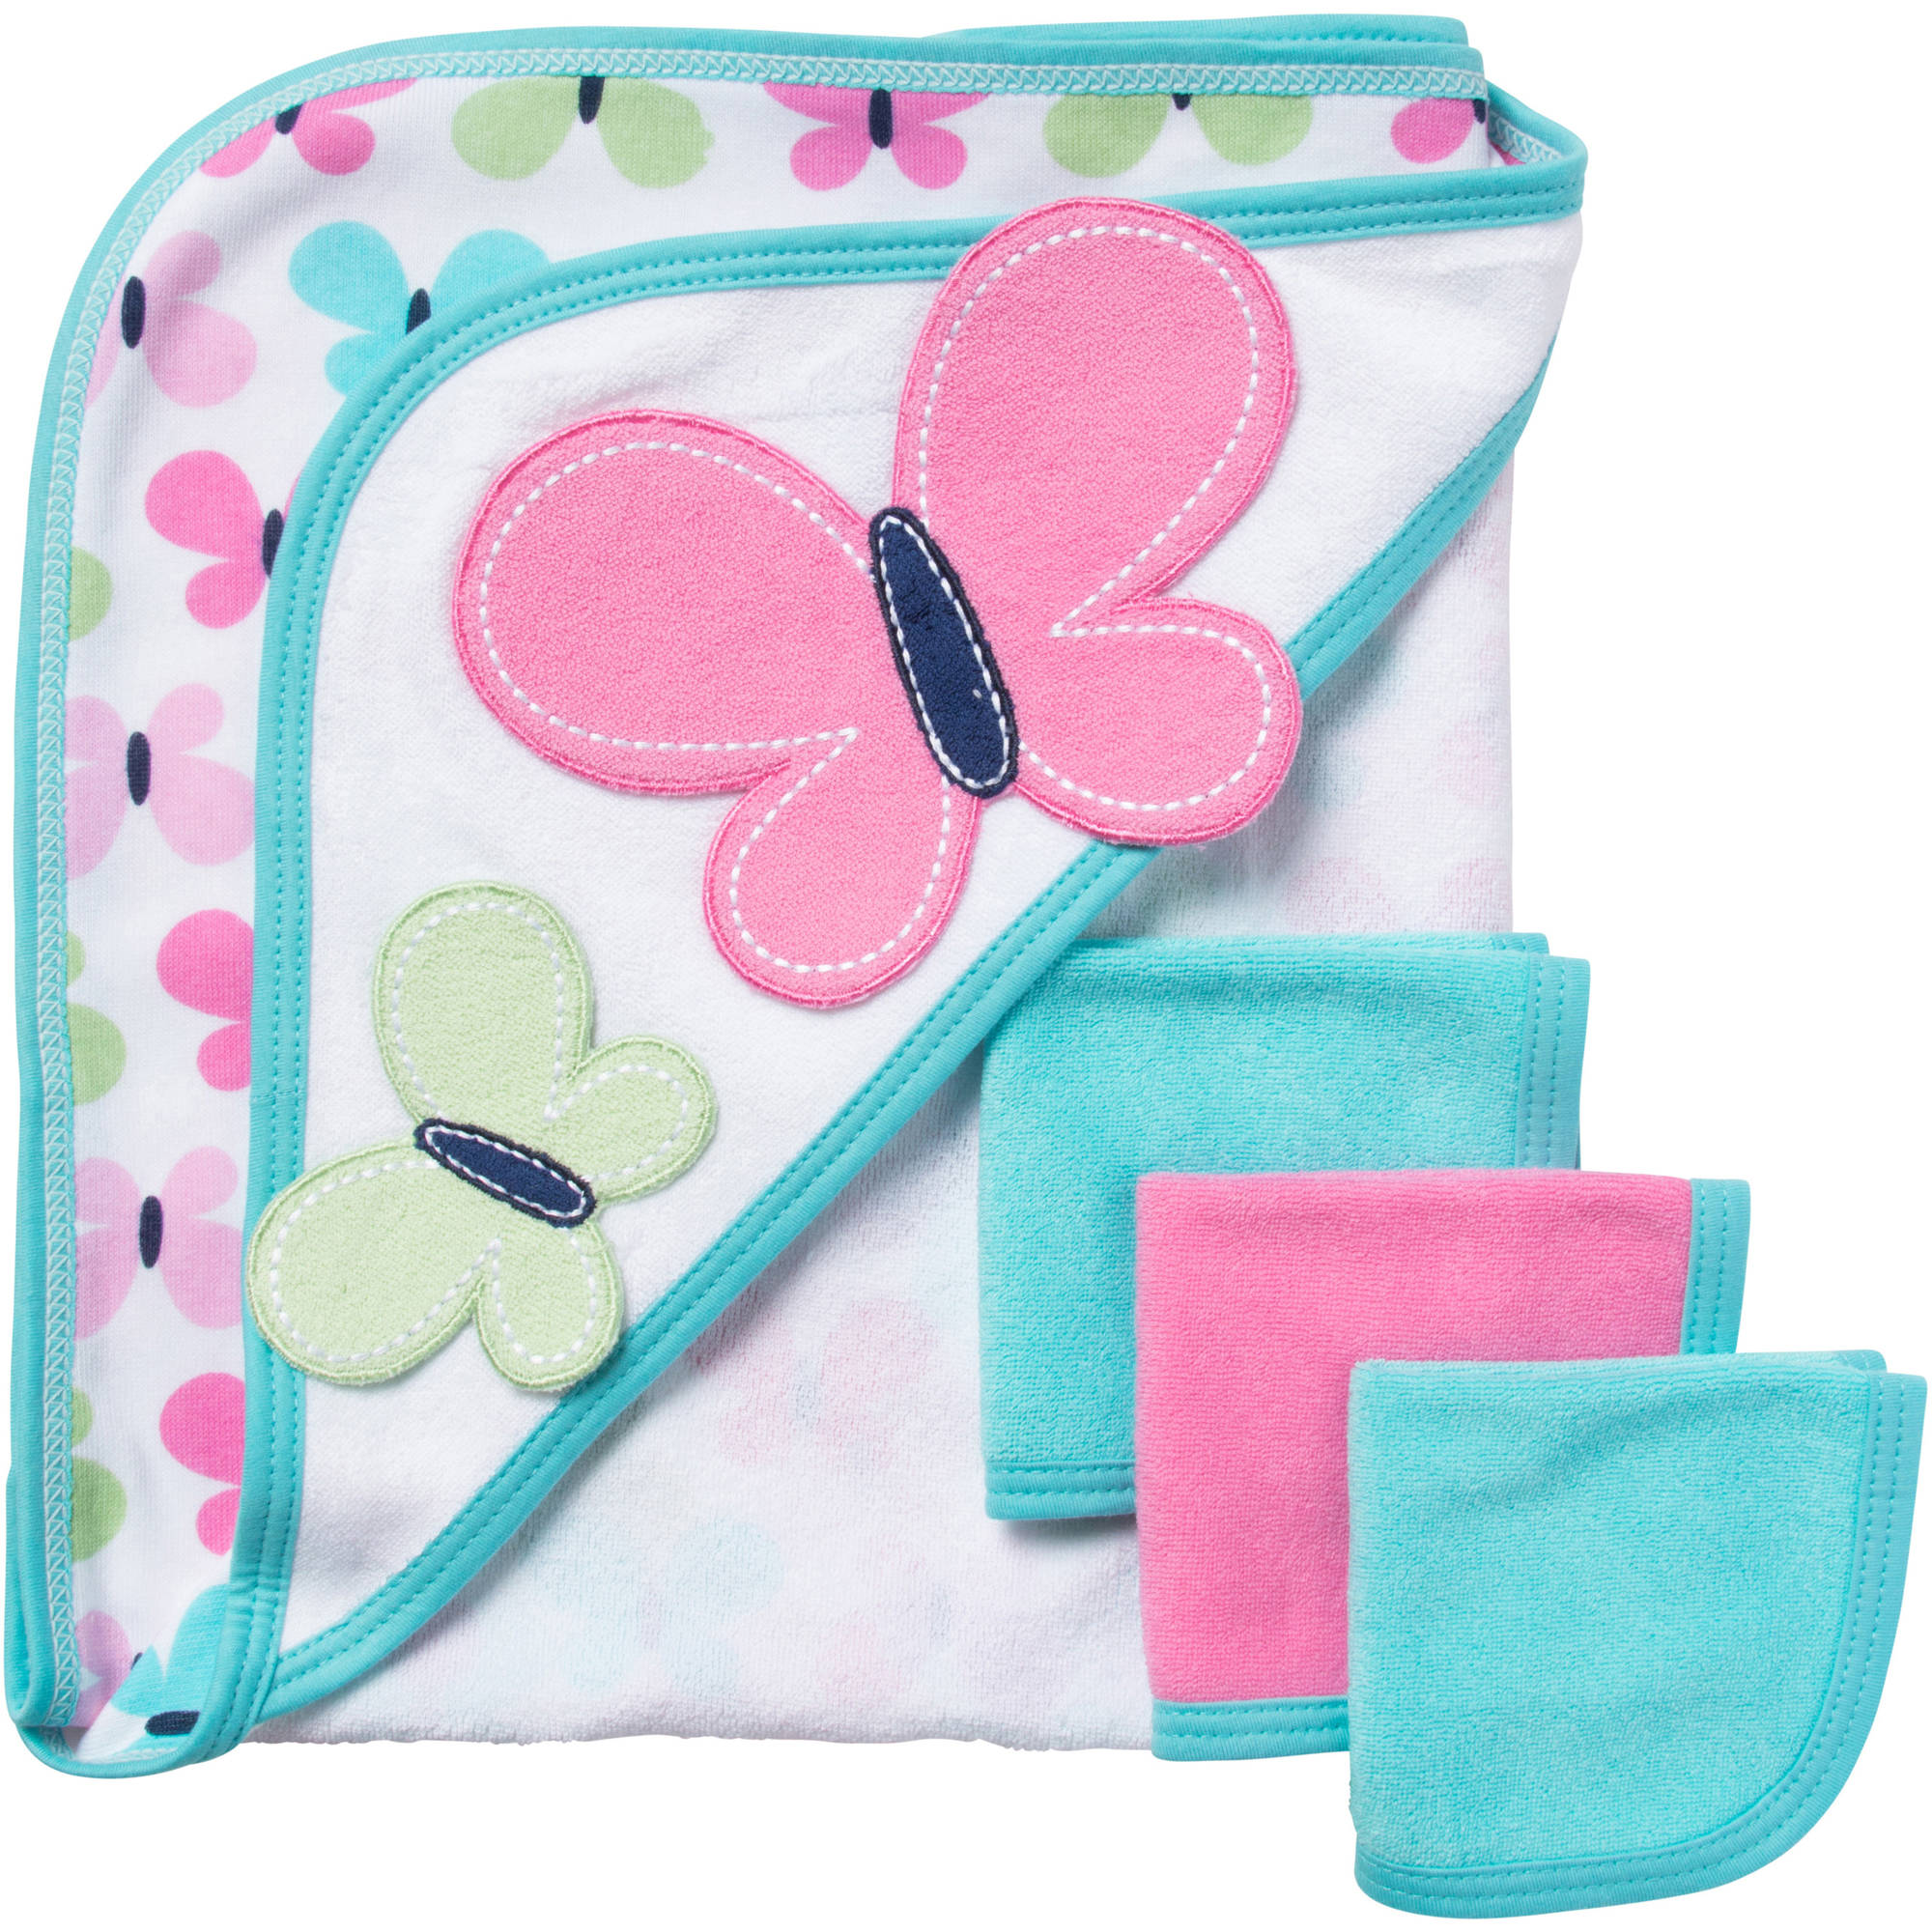 Gerber Newborn Baby Girl Bath Set, 4-Piece